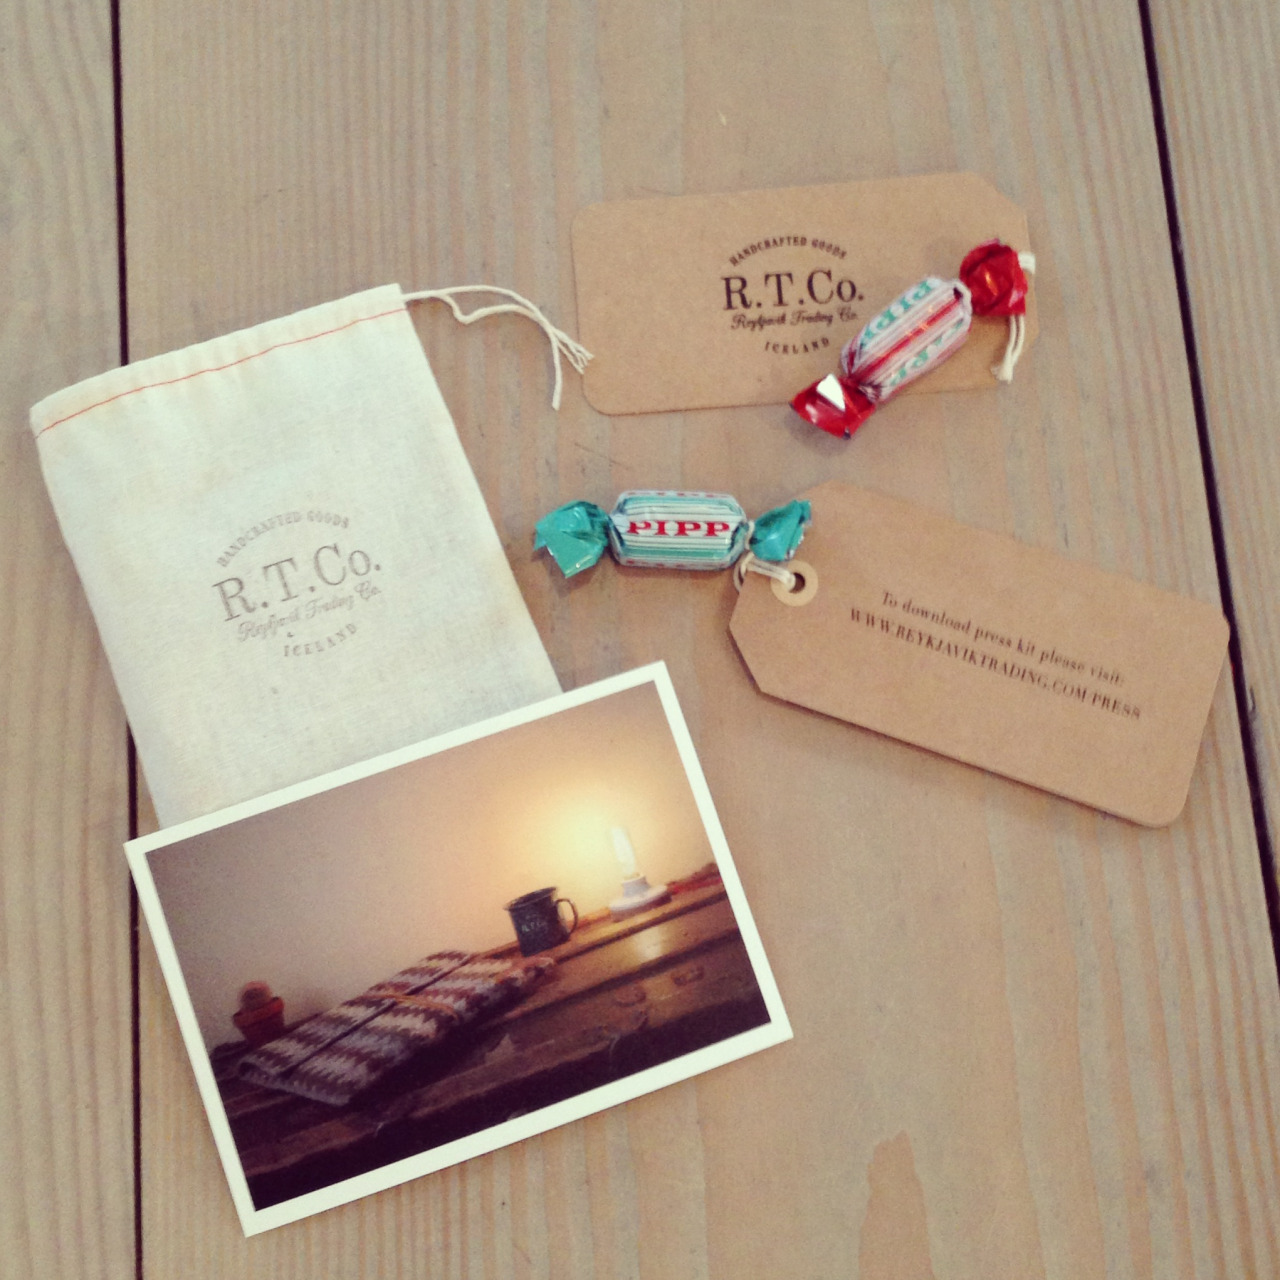 We're pretty sure no one else handcrafts press kits like ours- each one comes with a postcard, our favorite Icelandic candy & a reusable cotton bag (for coins, etc.)